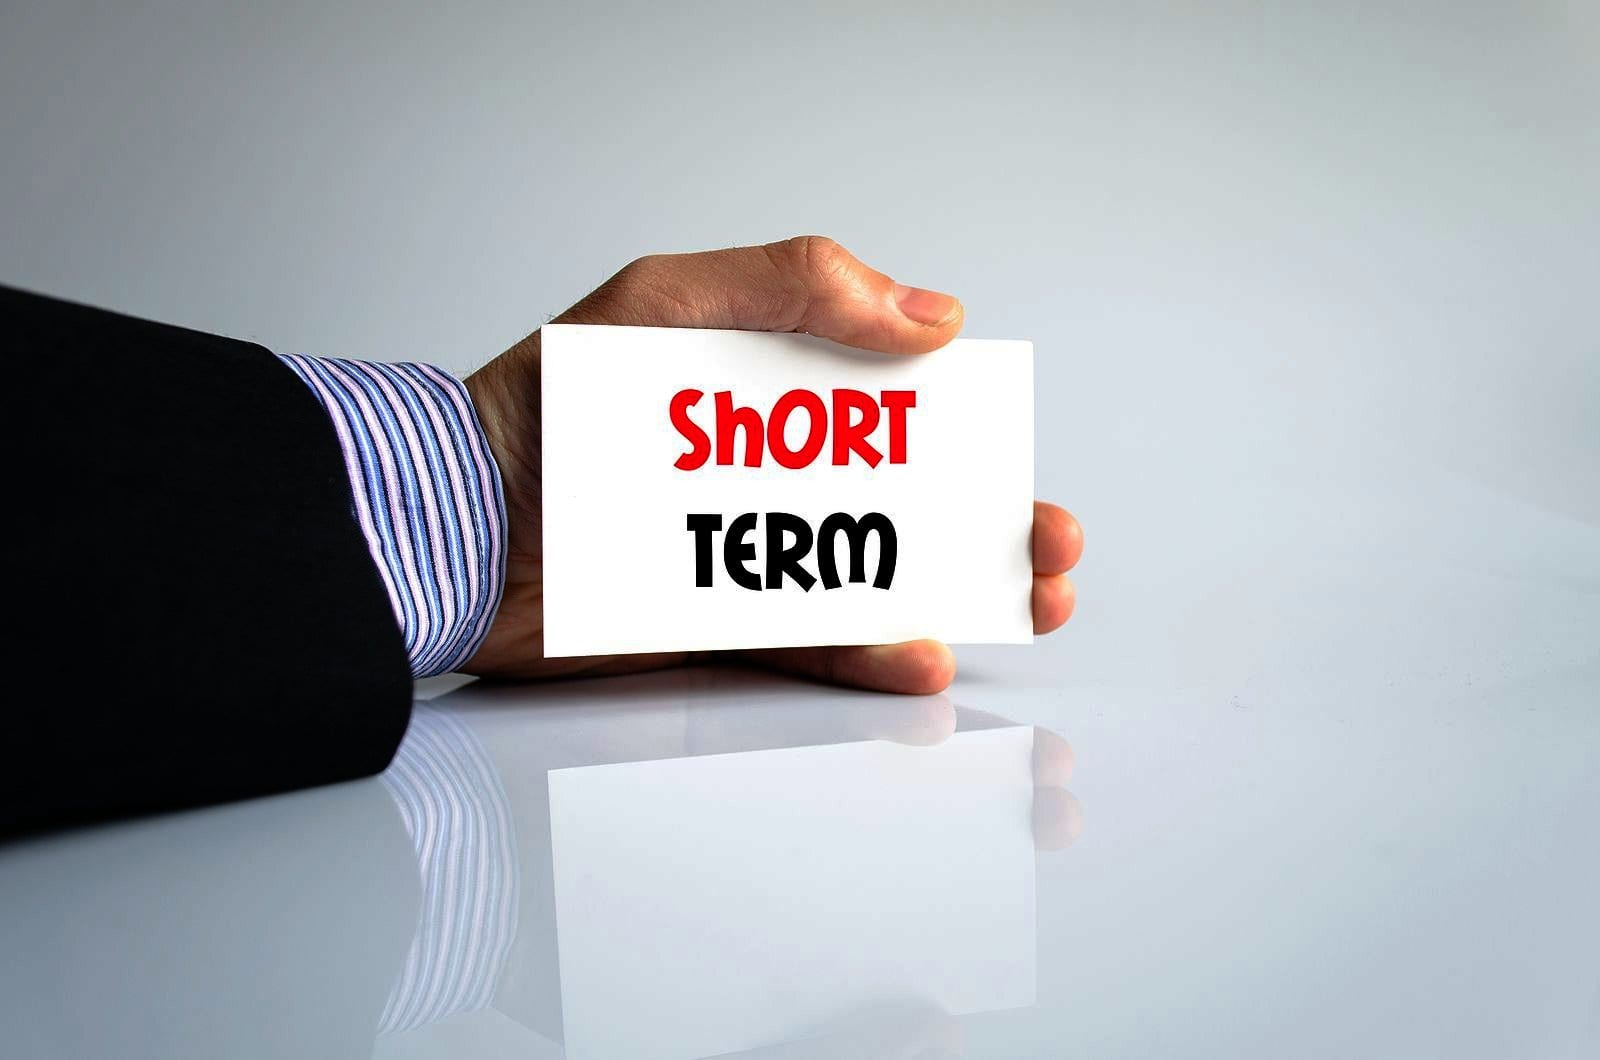 Strategies for shor term real estate investments